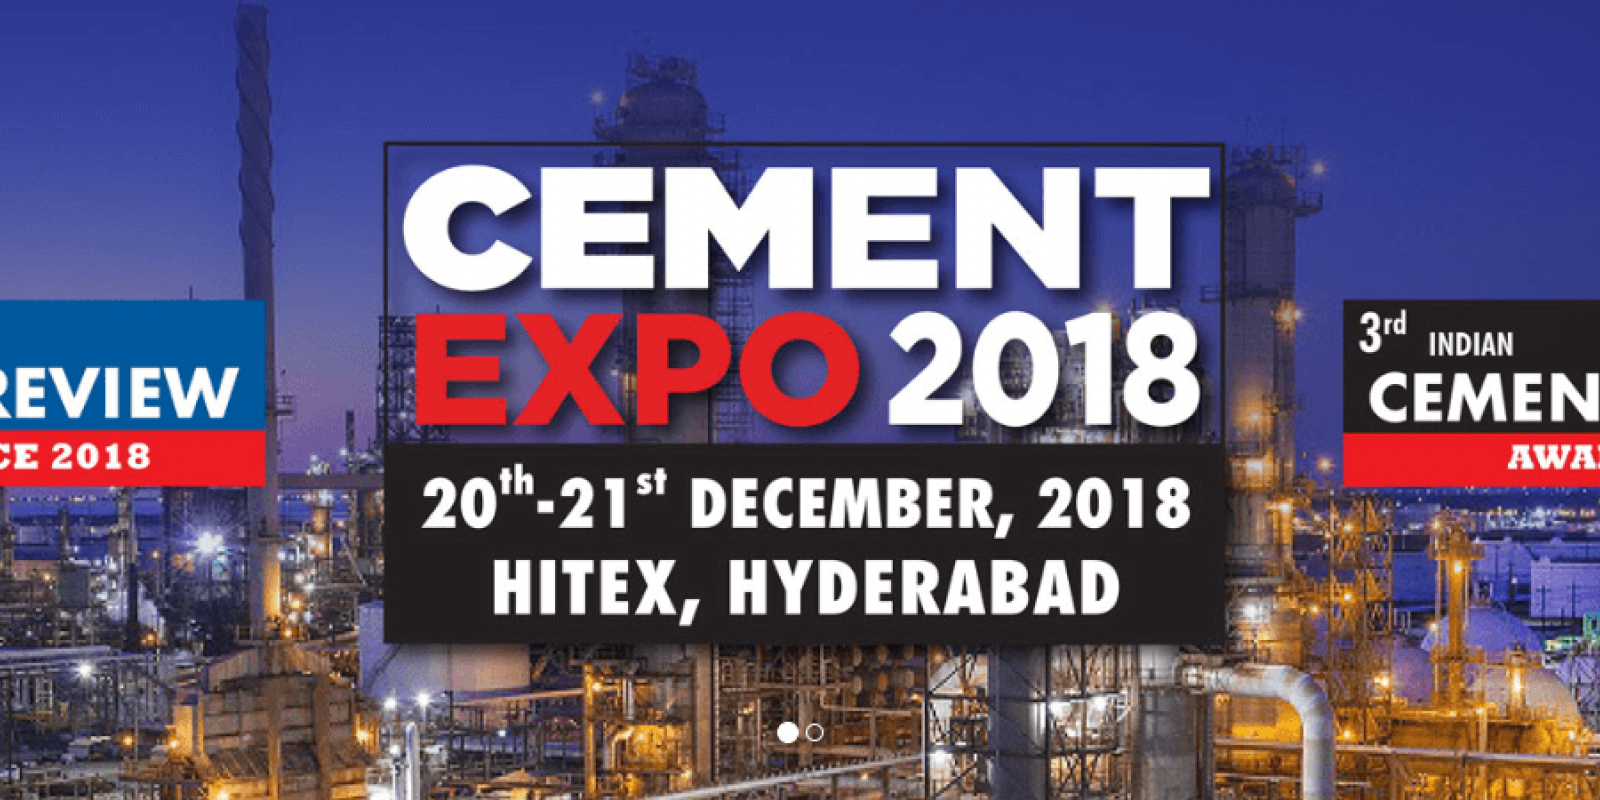 Cement Expo 2018 Hyderabad